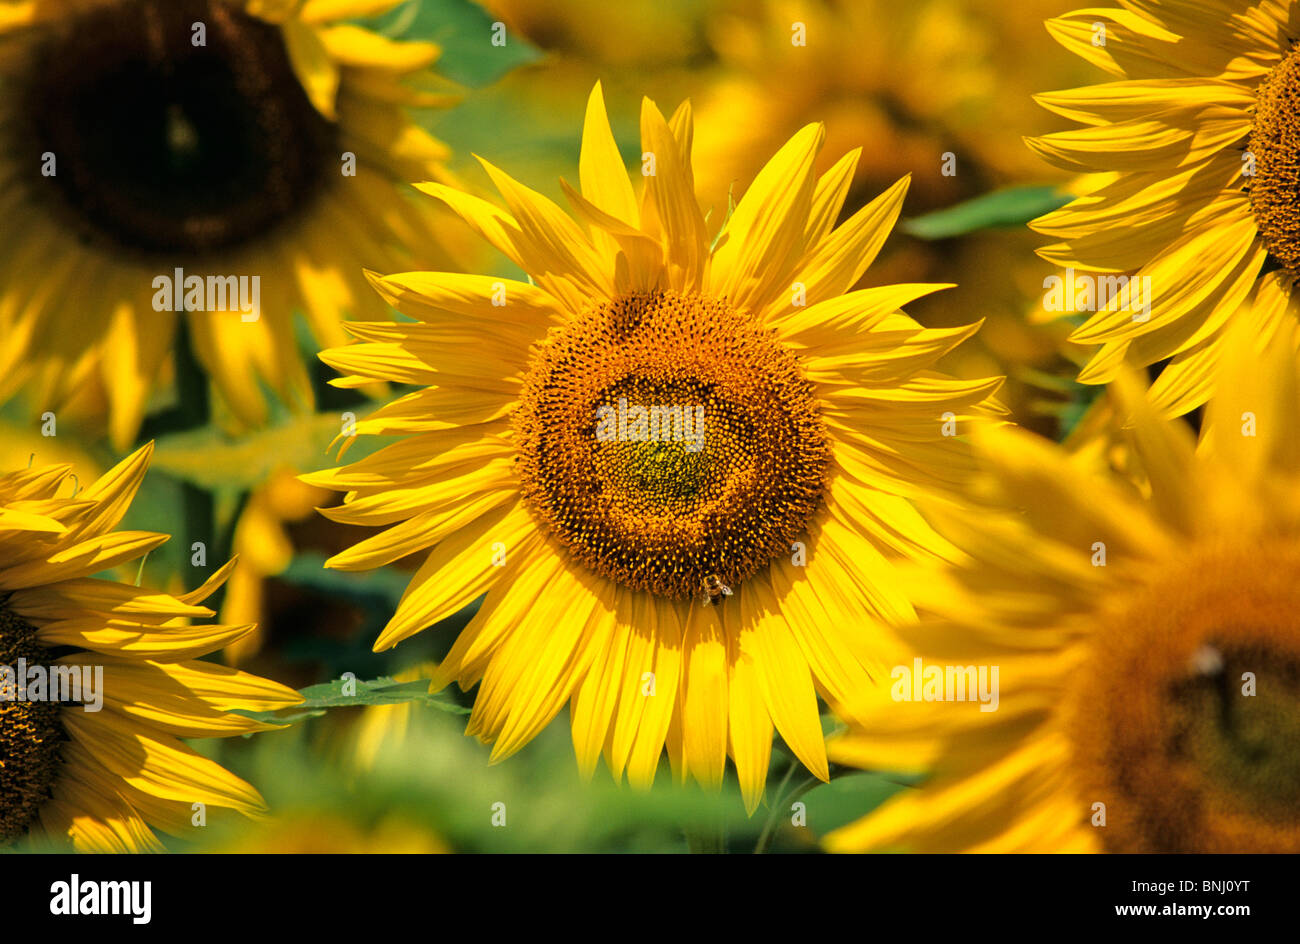 Agriculture yellow sunflowers draft plan plant Bläte - Stock Image